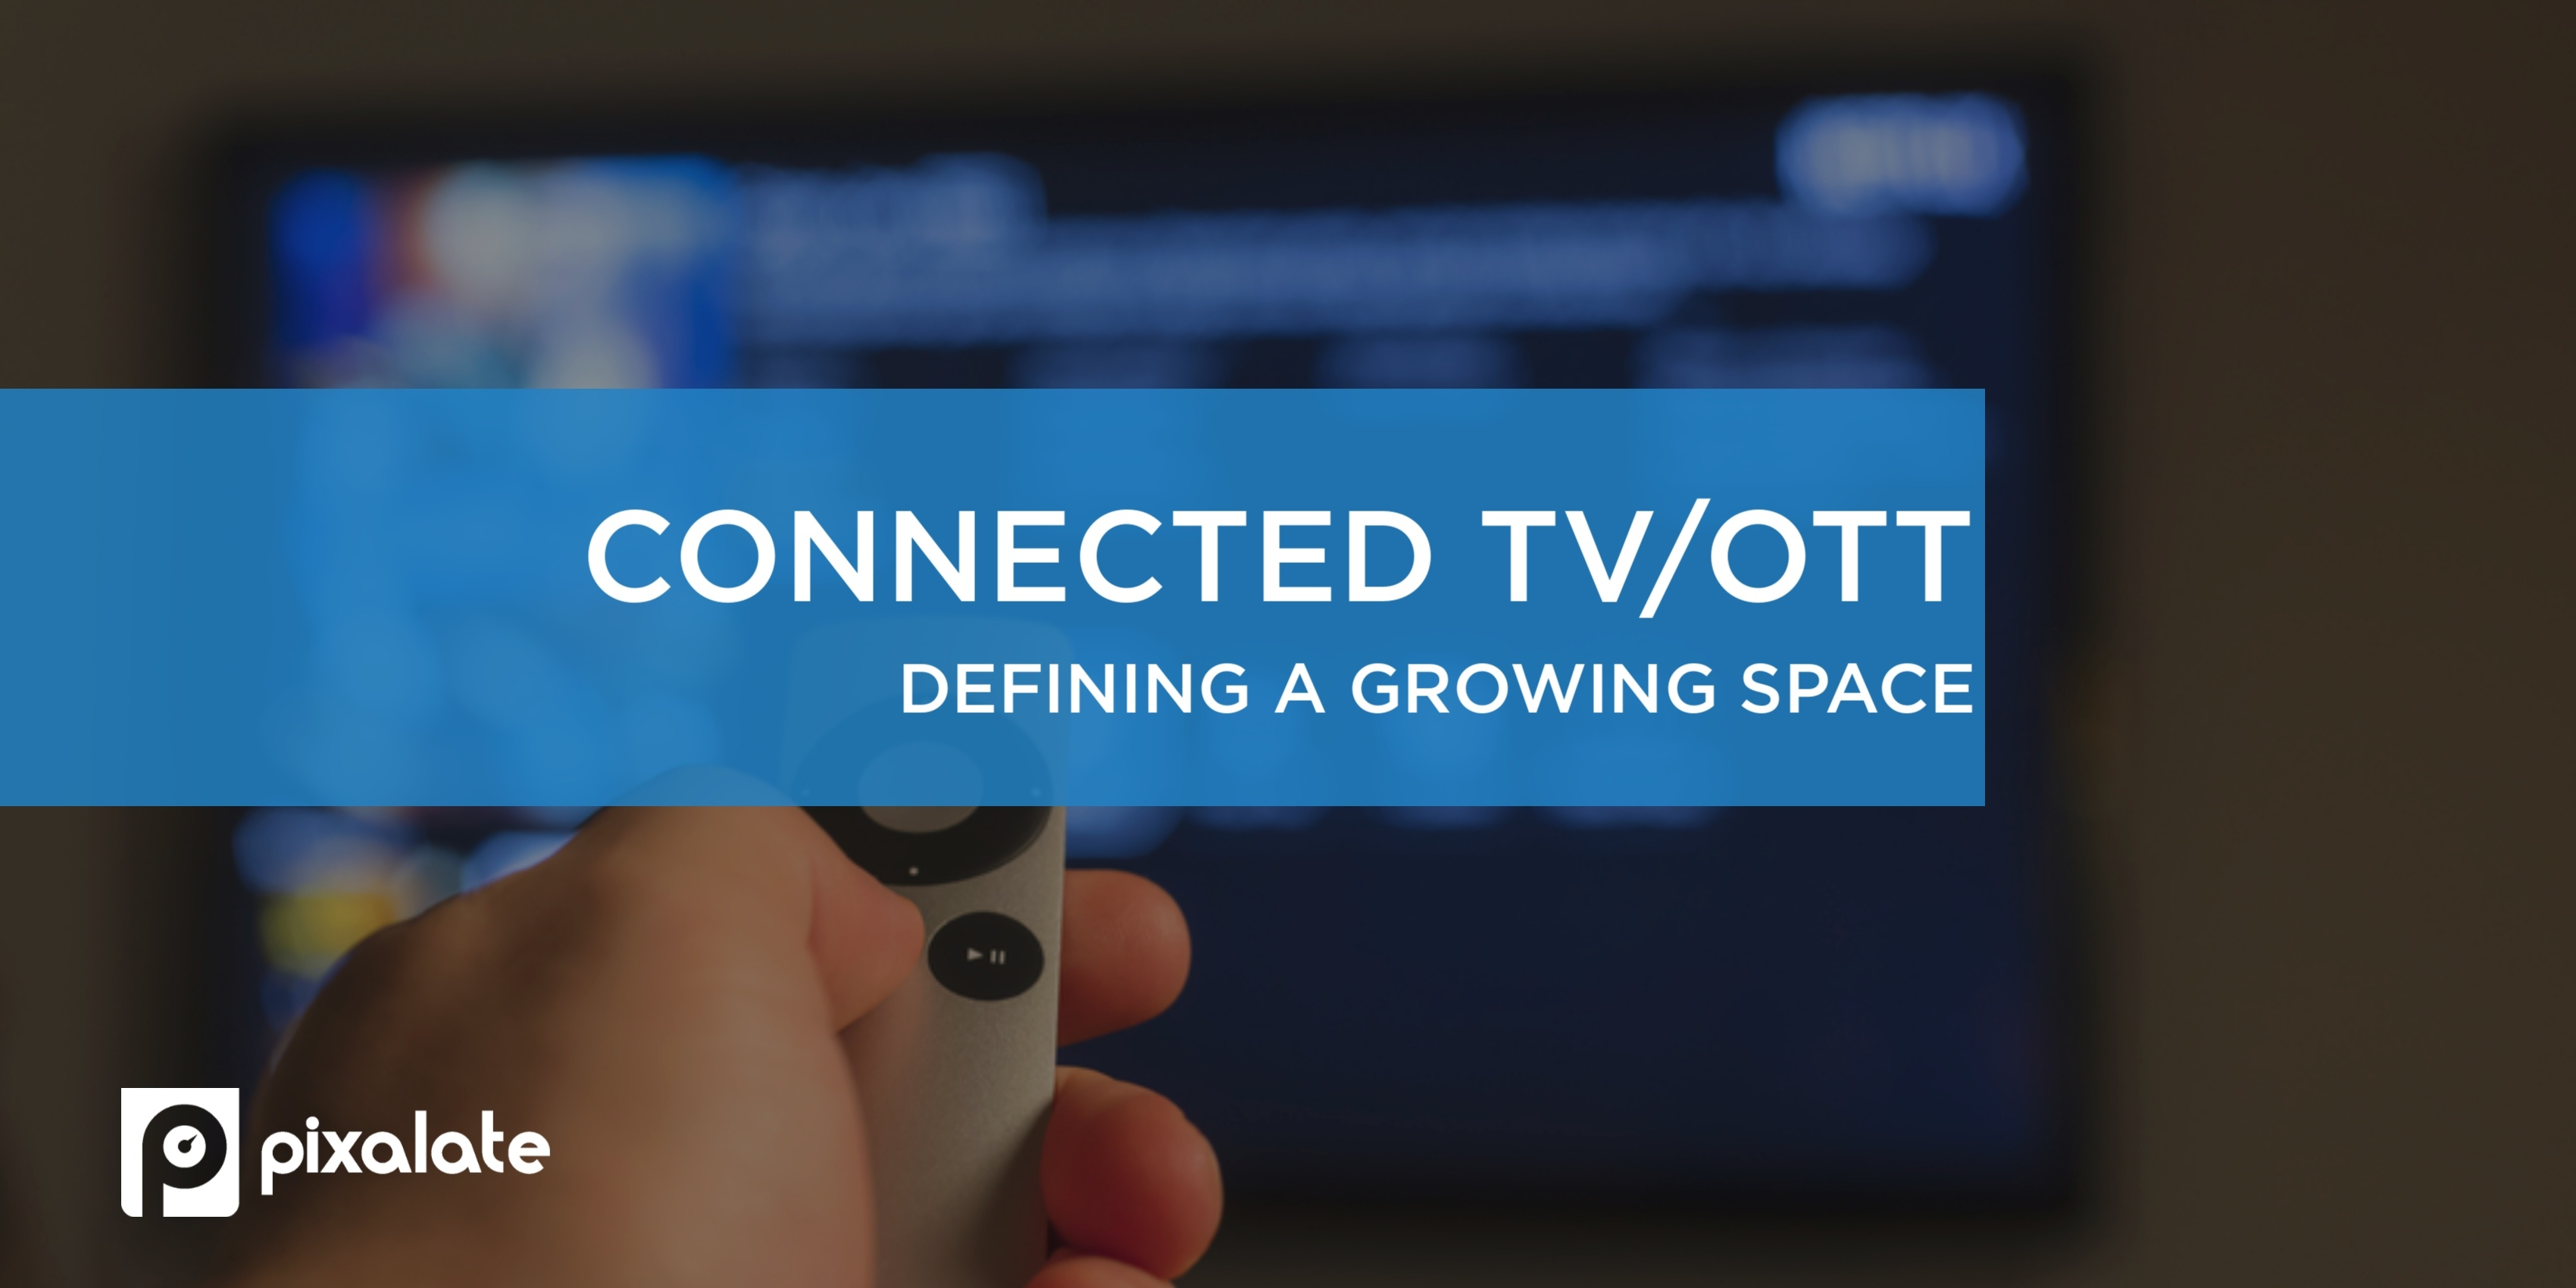 Video Caminetto Per Tv what is ott and how is it different from video?